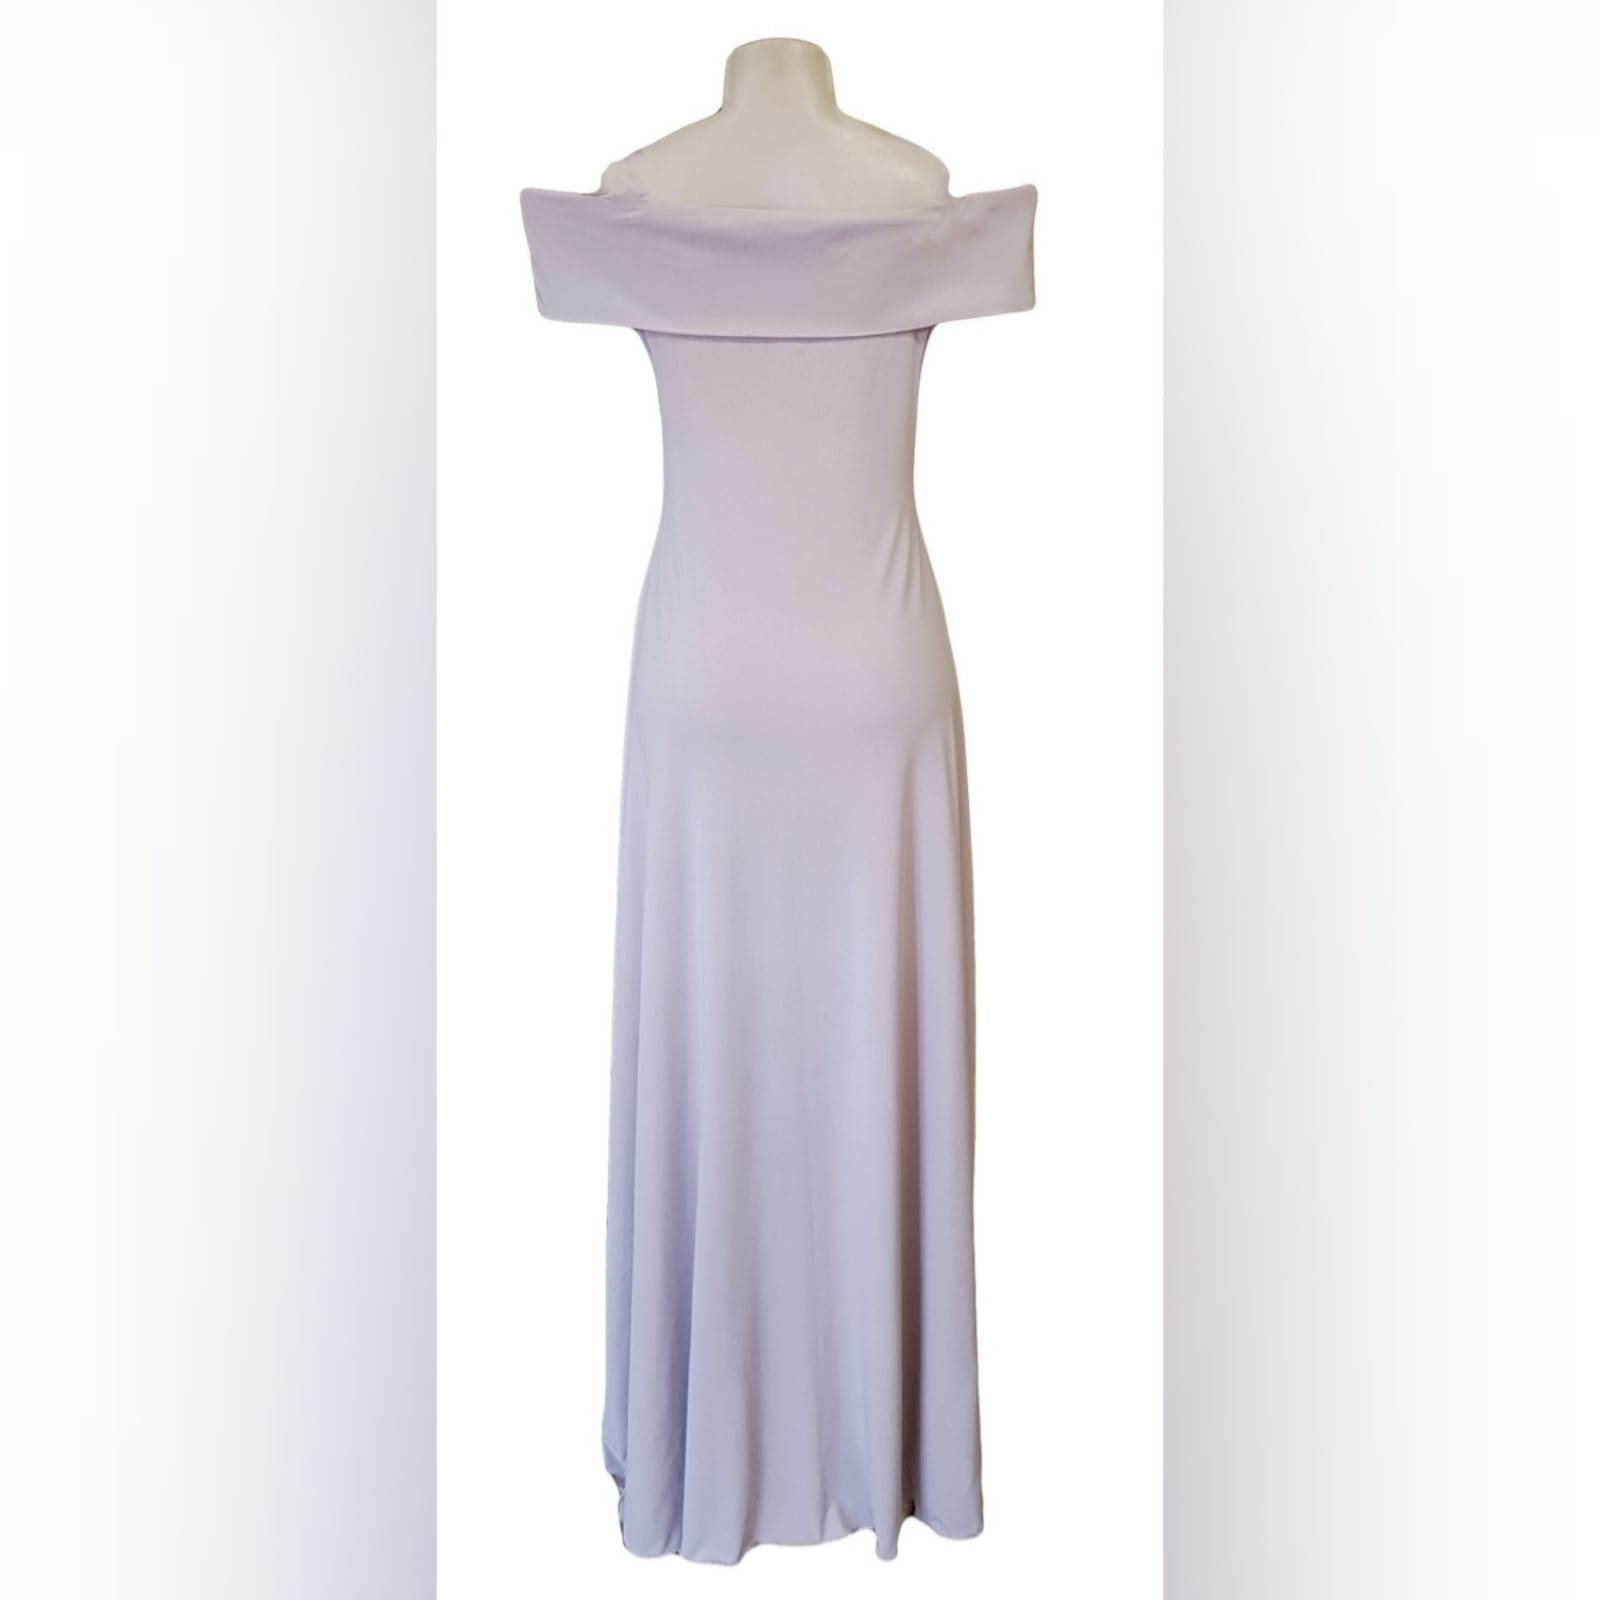 "Simple elegant nude long prom dress 6 <blockquote>""always be a first rate version of yourself and not a second rate version of someone else"" judy garland</blockquote>simple elegant nude long prom dress with an off shoulder cross bust neckline and a slit. A gorgeous design that can be worn to several occasions due to its simplicity."